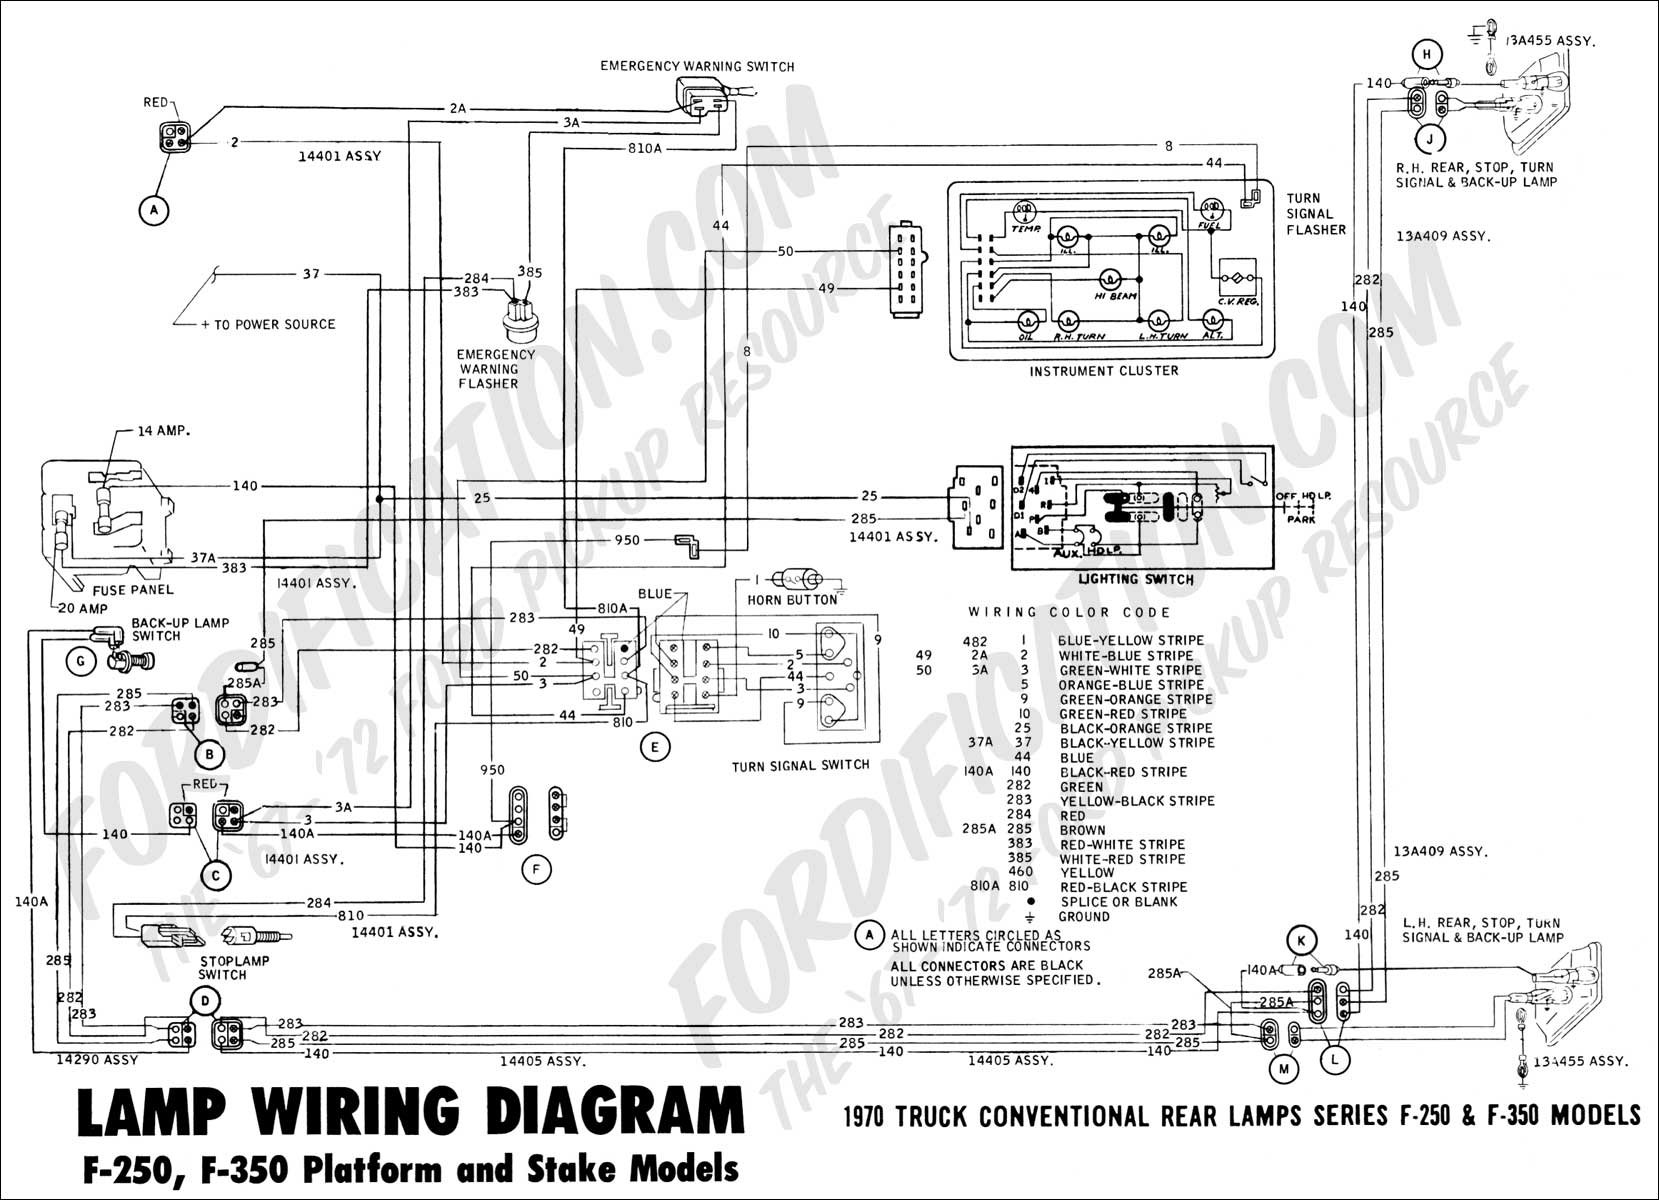 F53 Chassis Wiring Diagram Will Be A Thing 1996 Fleetwood Motorhome Schematic Ford Truck Technical Drawings And Schematics Section H 2013 2014